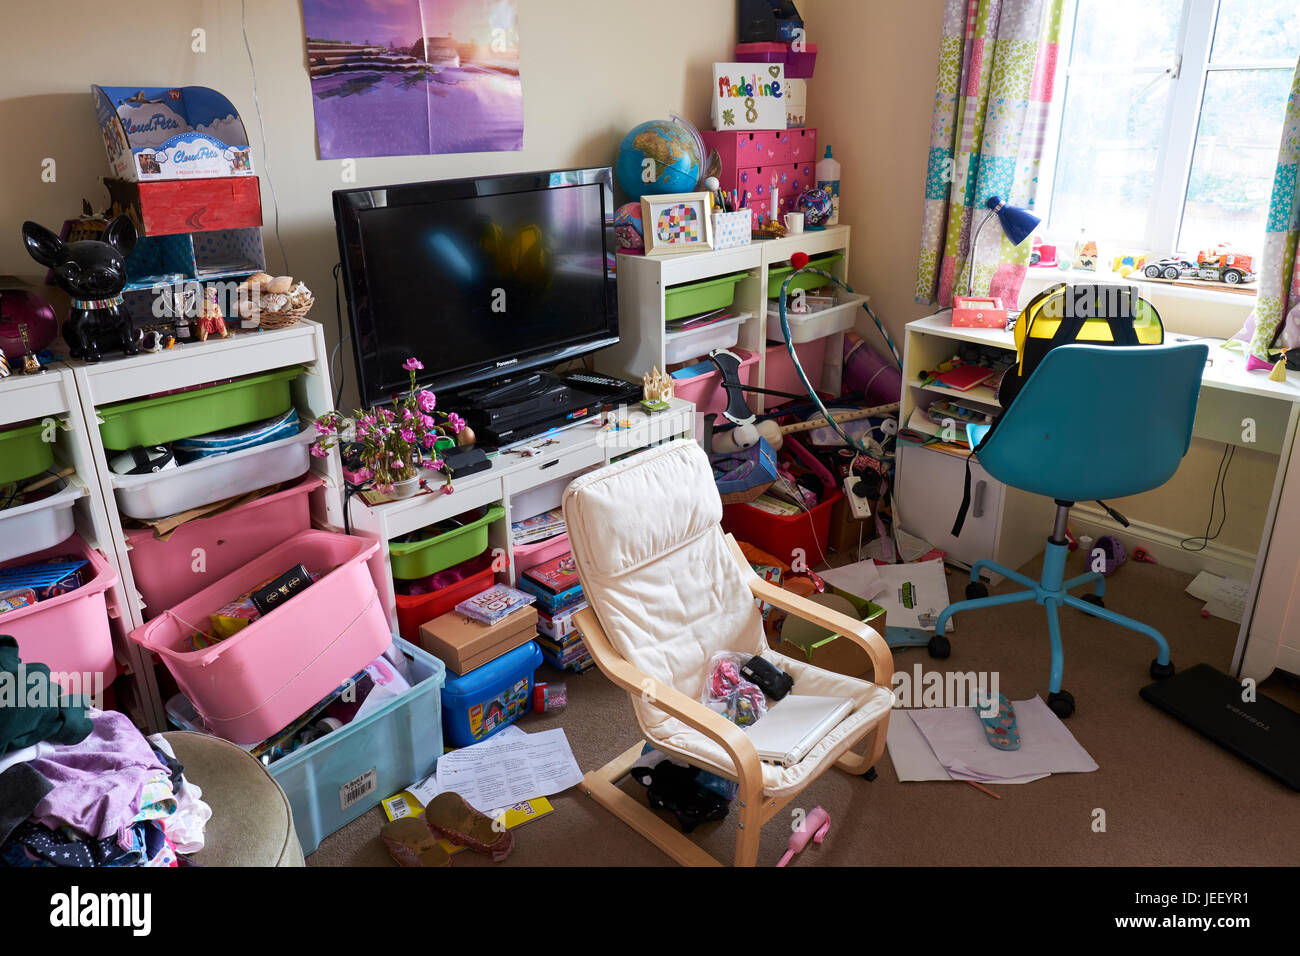 Young Girls Untidy Bedroom - Stock Image